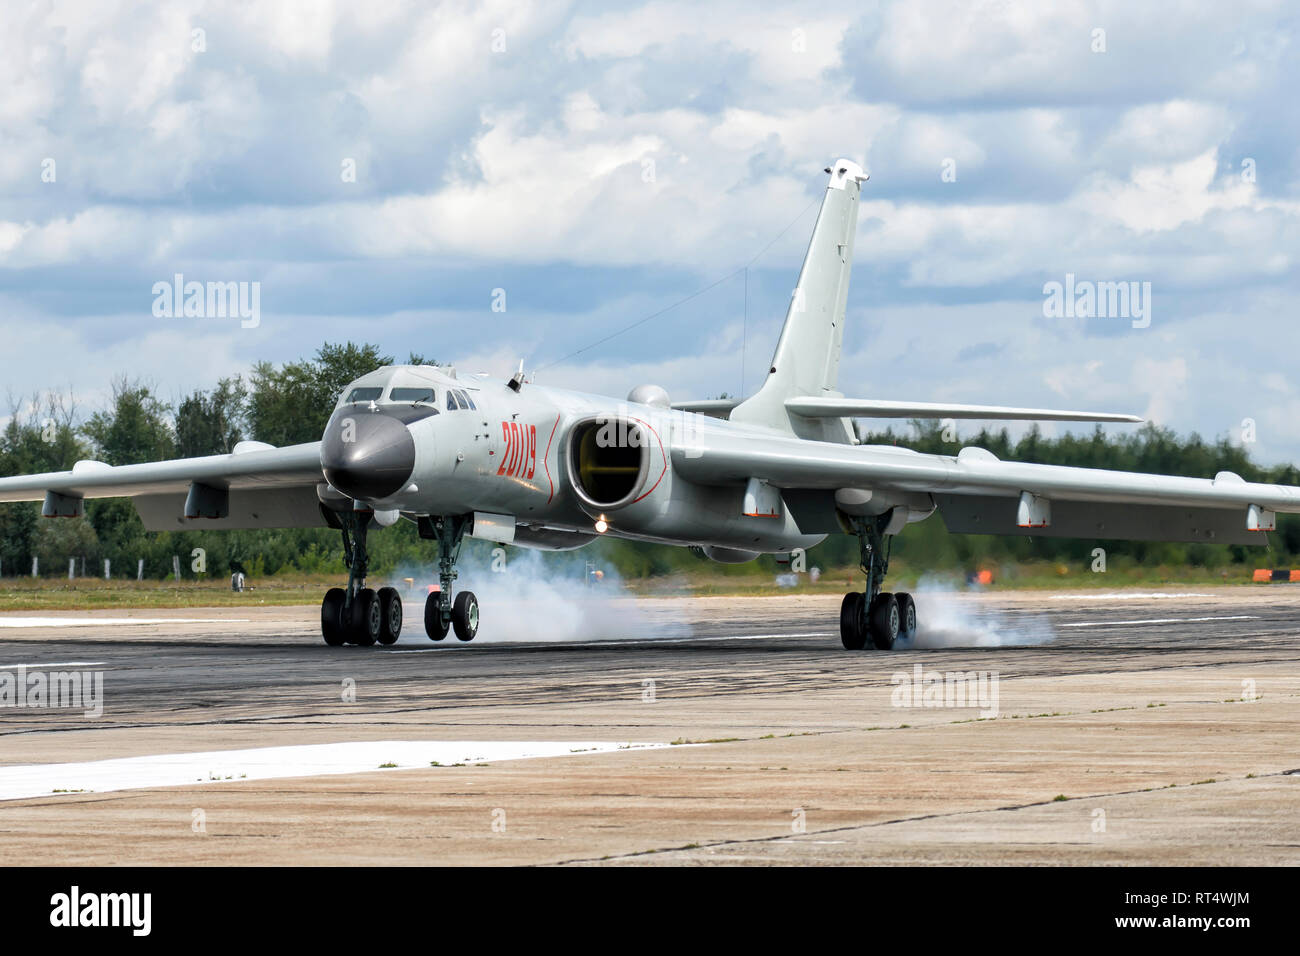 A People's Liberation Army Air Force Xian H-6K strategic bomber plane. - Stock Image